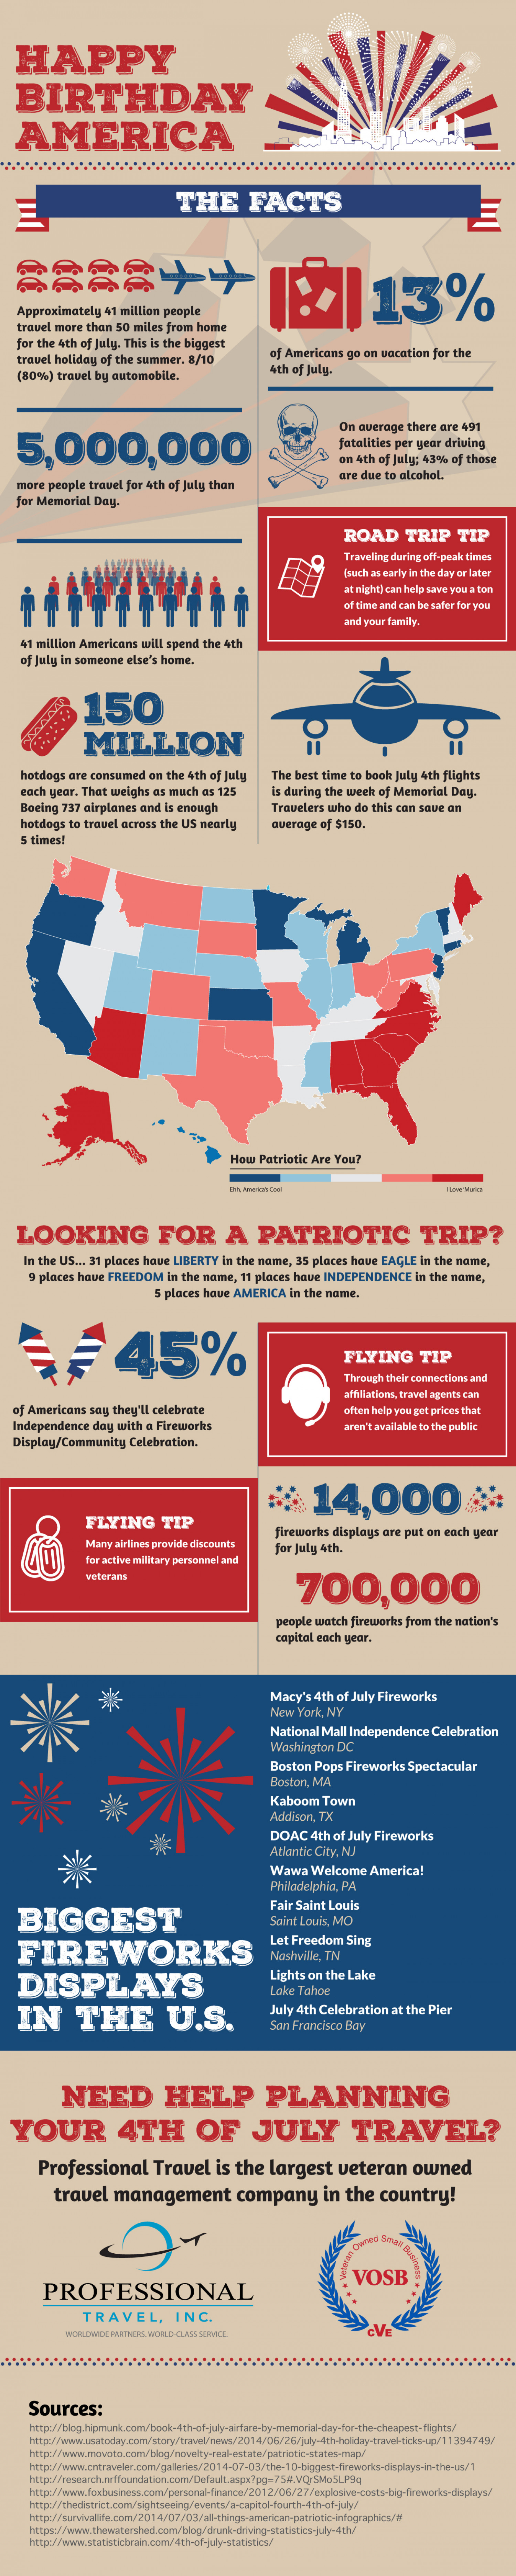 Happy Birthday America: 4th of July Travel by the Numbers Infographic